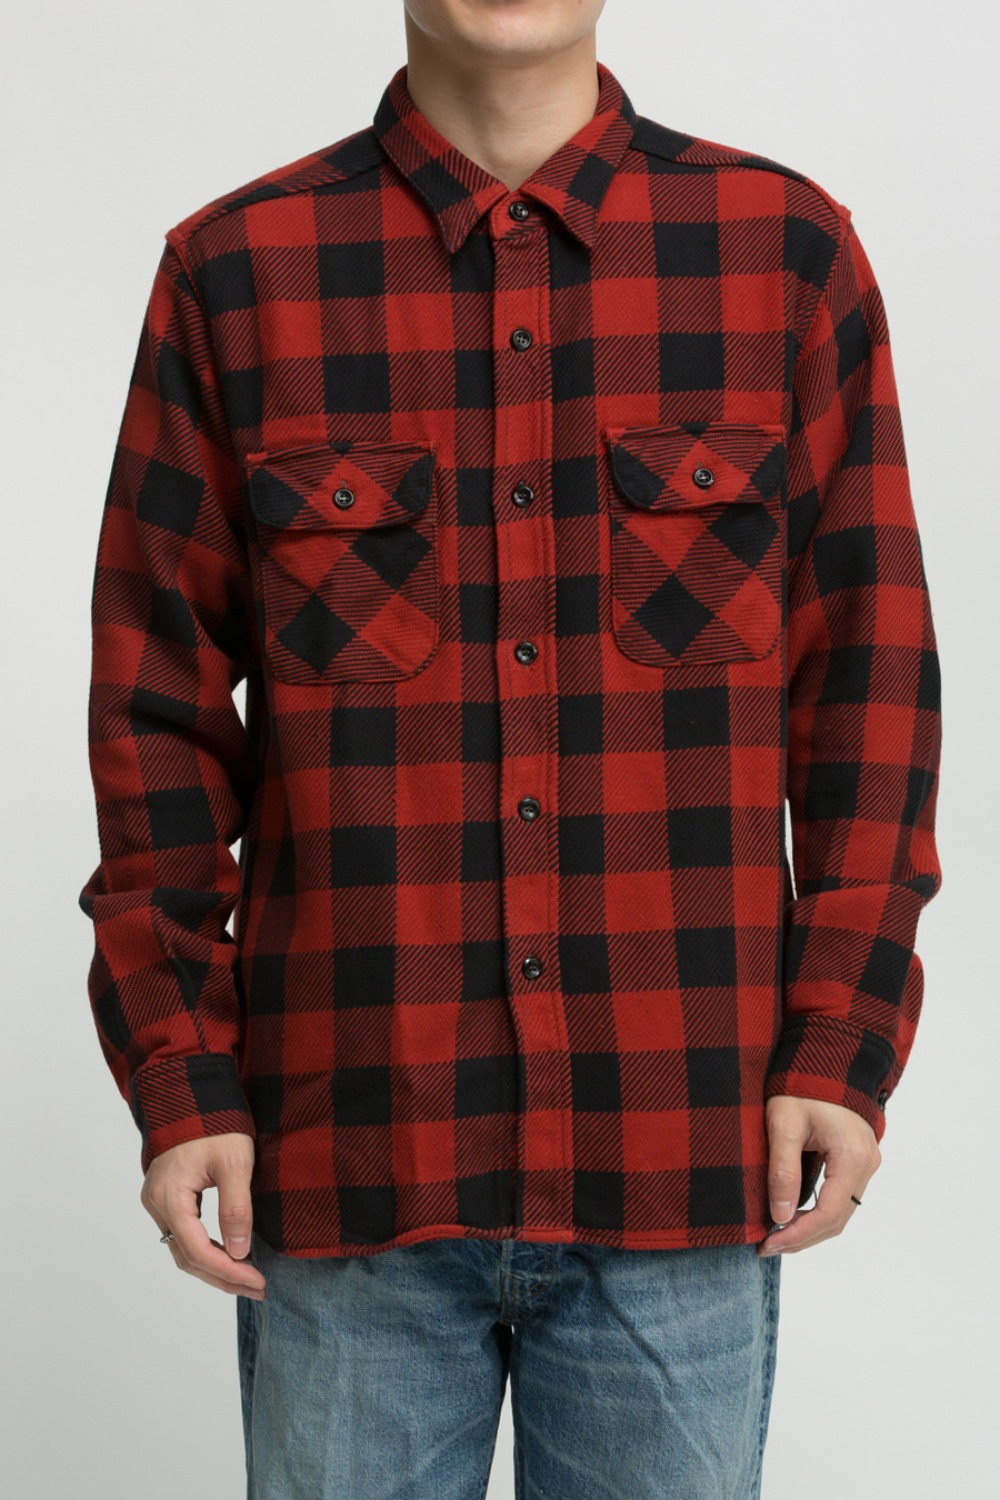 8HU BUFFALO CHECK FLANNEL SHIRT RED/BLACK